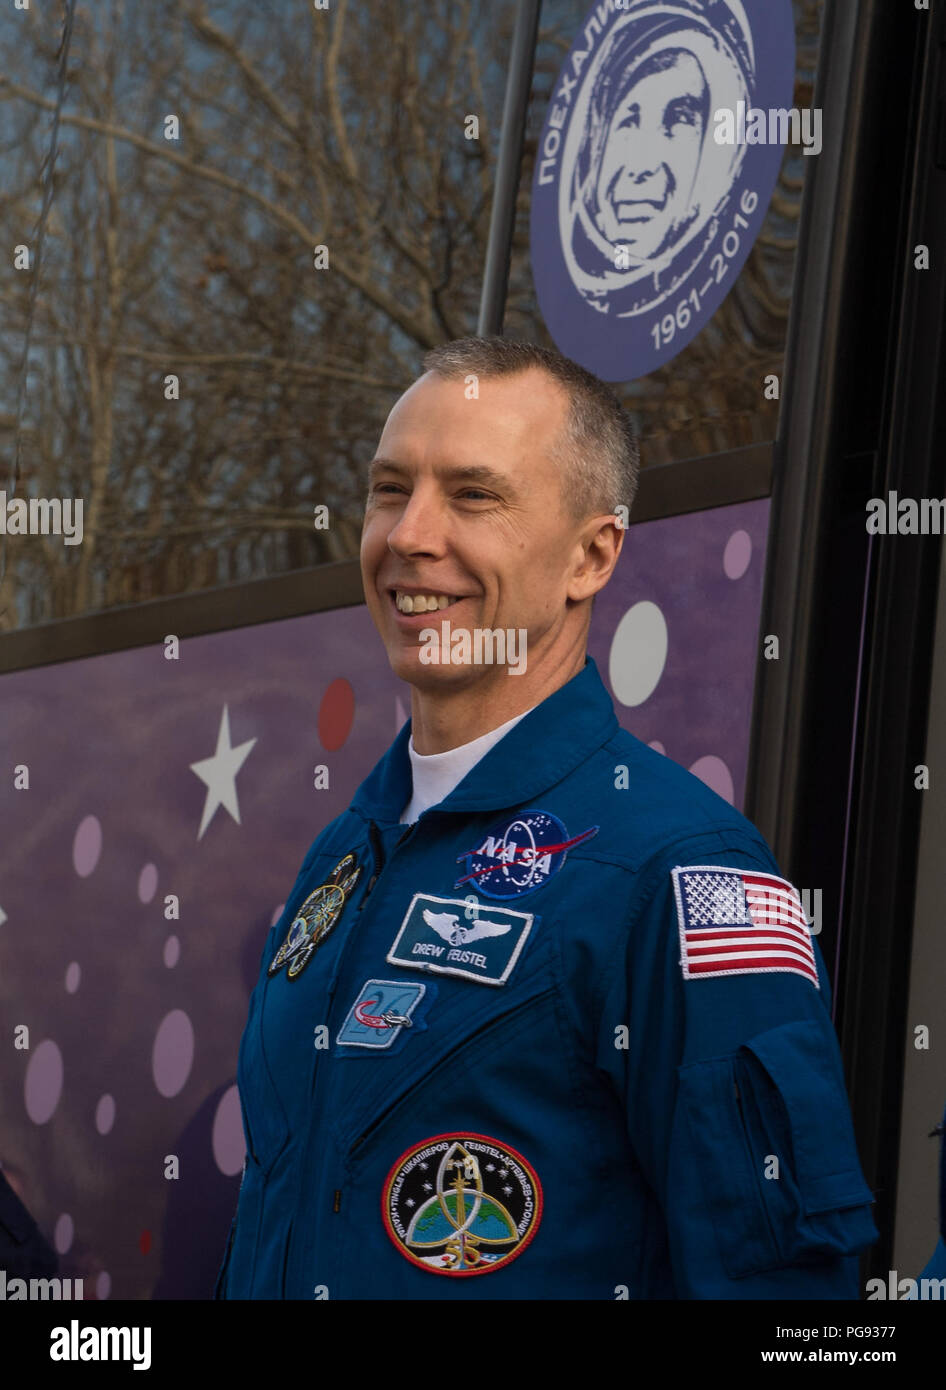 Expedition 55 Soyuz flight engineer Drew Feustel of NASA is seen as he and fellow crewmates Oleg Artemyev of Roscosmos and Ricky Arnold of NASA depart the Cosmonaut Hotel to suit-up for their Soyuz launch to the International Space Station, Wednesday, March 21, 2018 in Baikonur, Kazakhstan. Arnold, Artemyev, and Feustel launched aboard the Soyuz MS-08 spacecraft at 1:44 p.m. Eastern time (11:44 p.m. Baikonur time) on March 21 to begin their journey to the International Space Station. - Stock Image